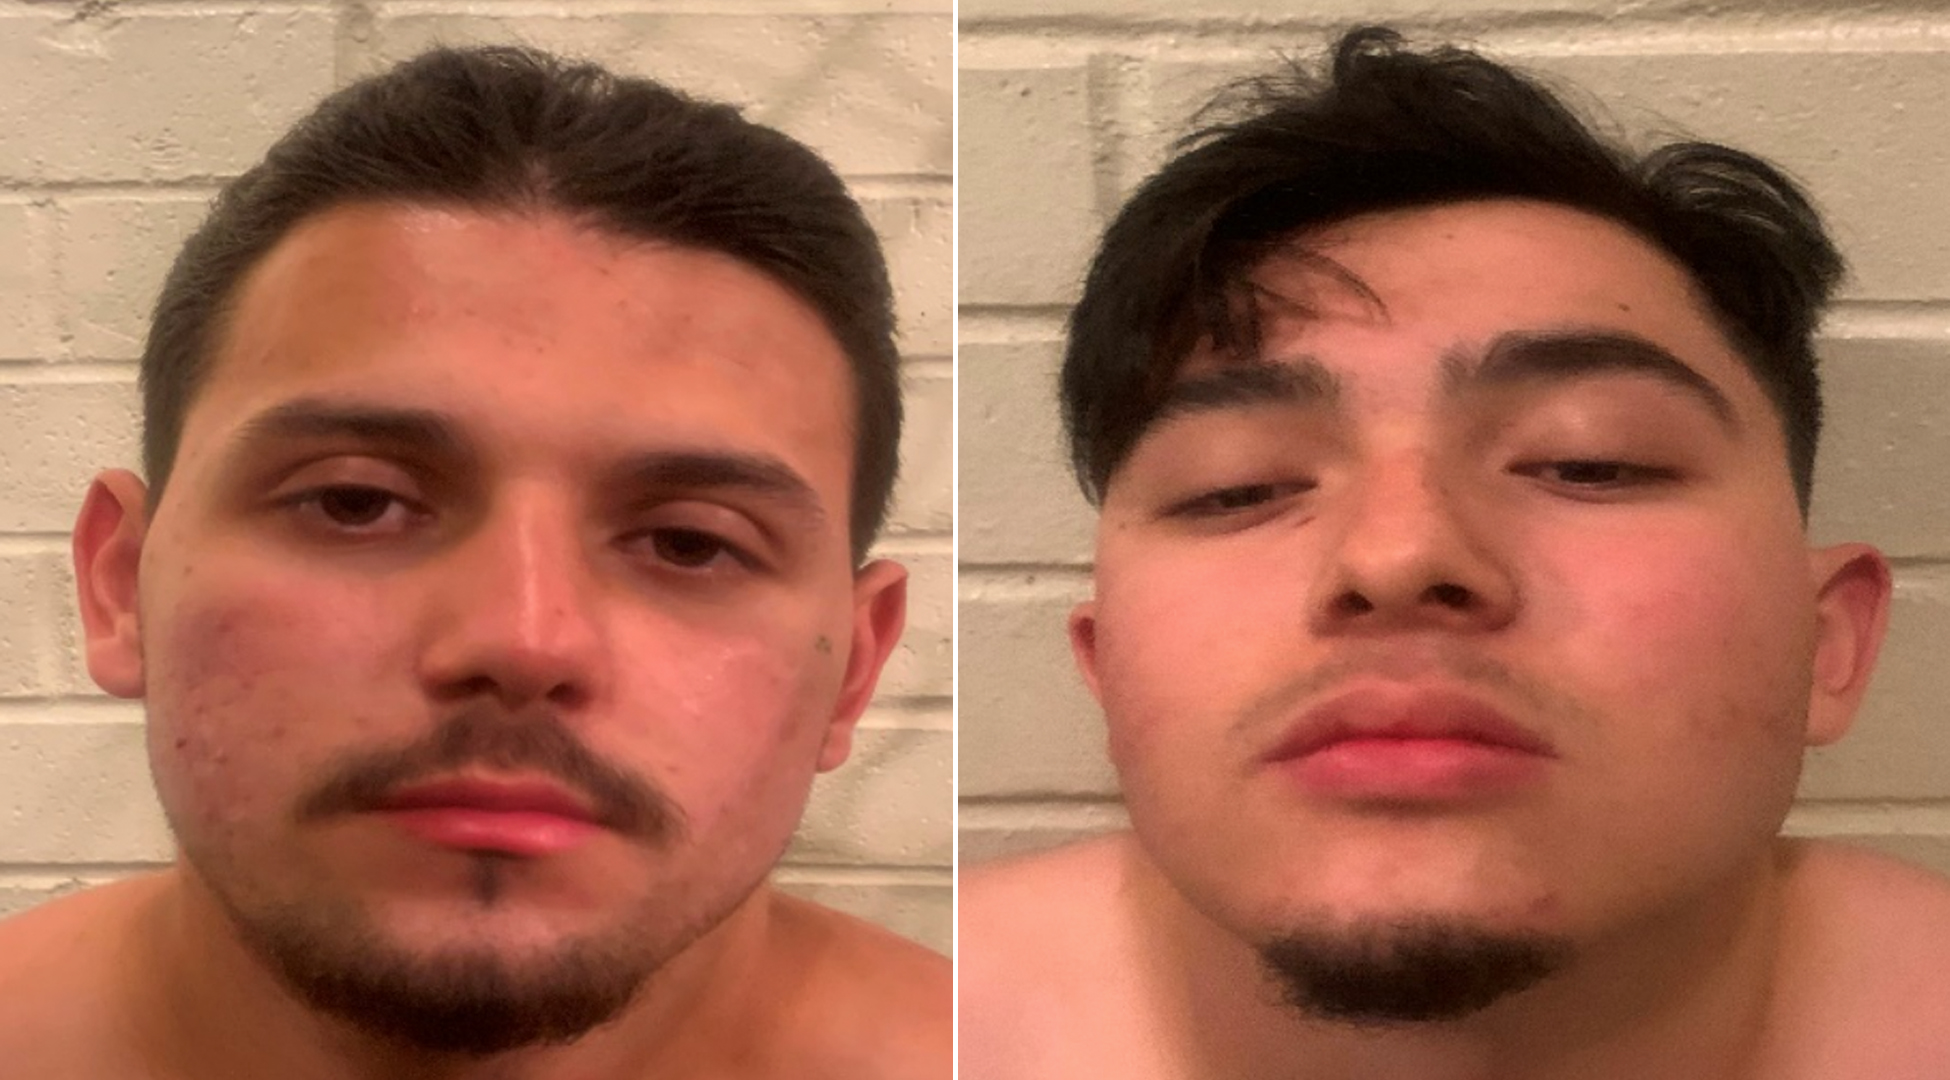 Nathan Runneals, 19, on the left and Abraham Gomez, 18, on the right, appear in undated photos provided by the Placentia Police Department on May 24, 2019.